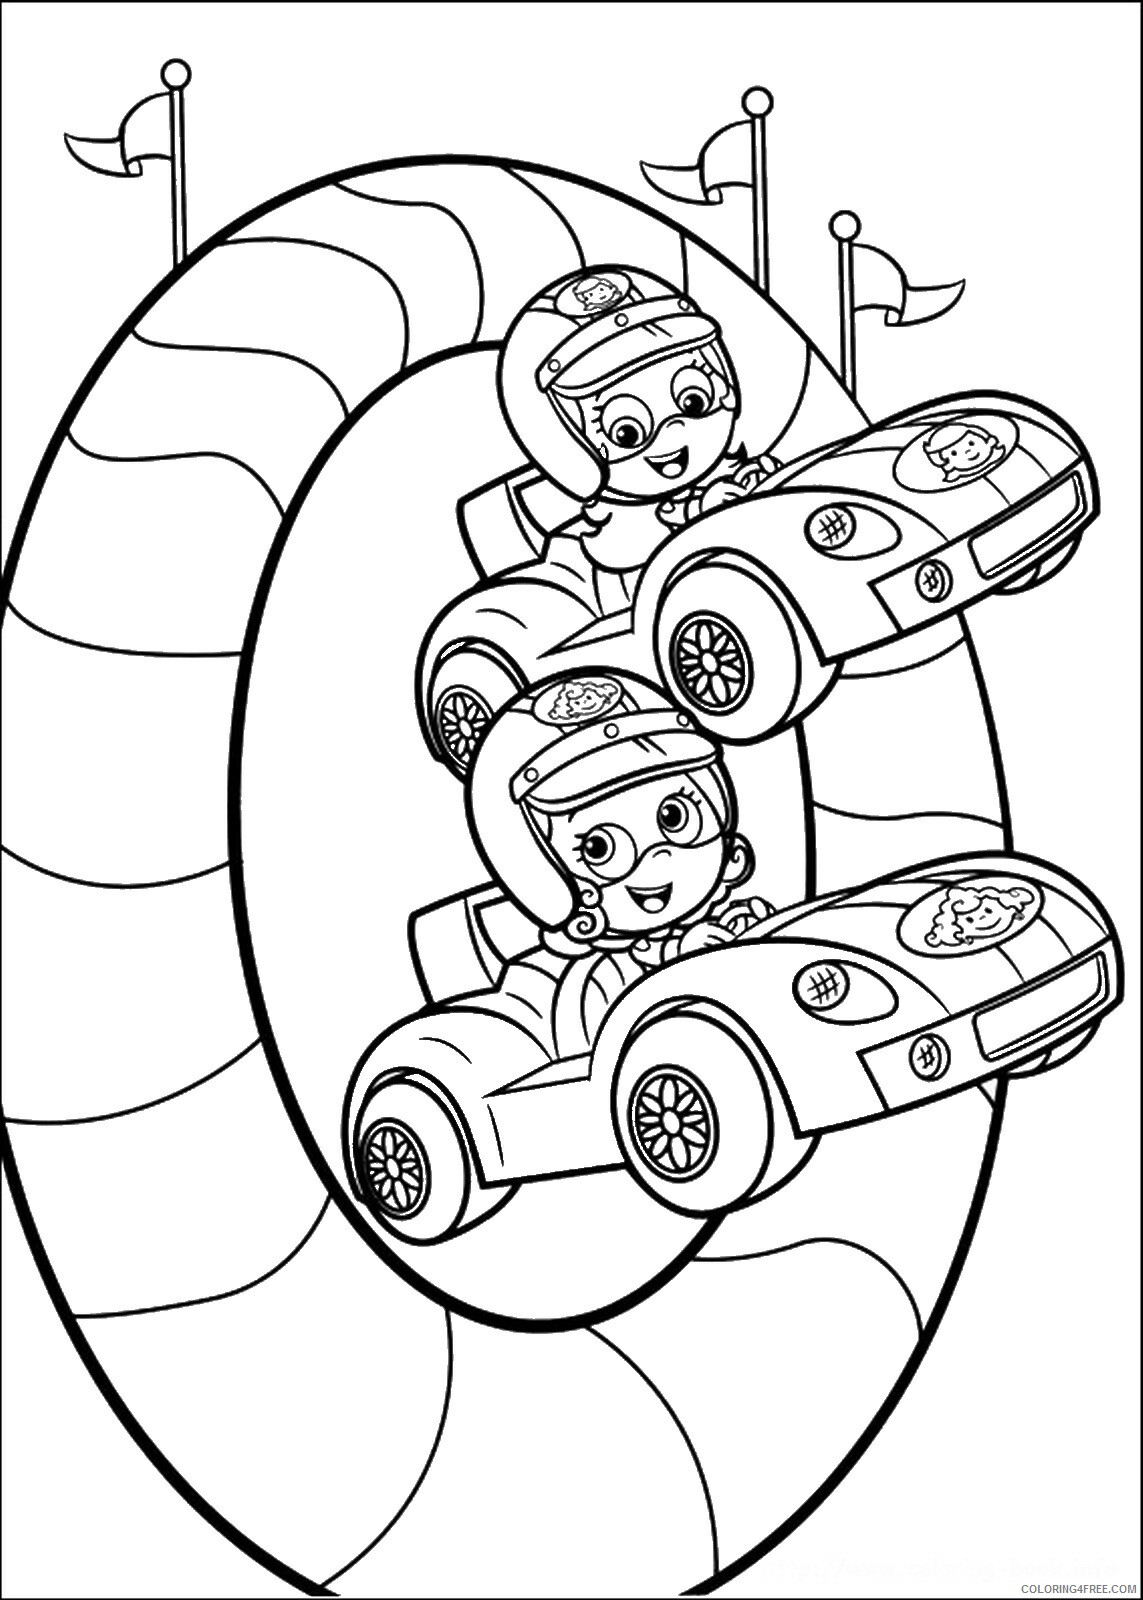 Bubble Guppies Coloring Pages TV Film bubble_guppies_cl07 Printable 2020 01538 Coloring4free